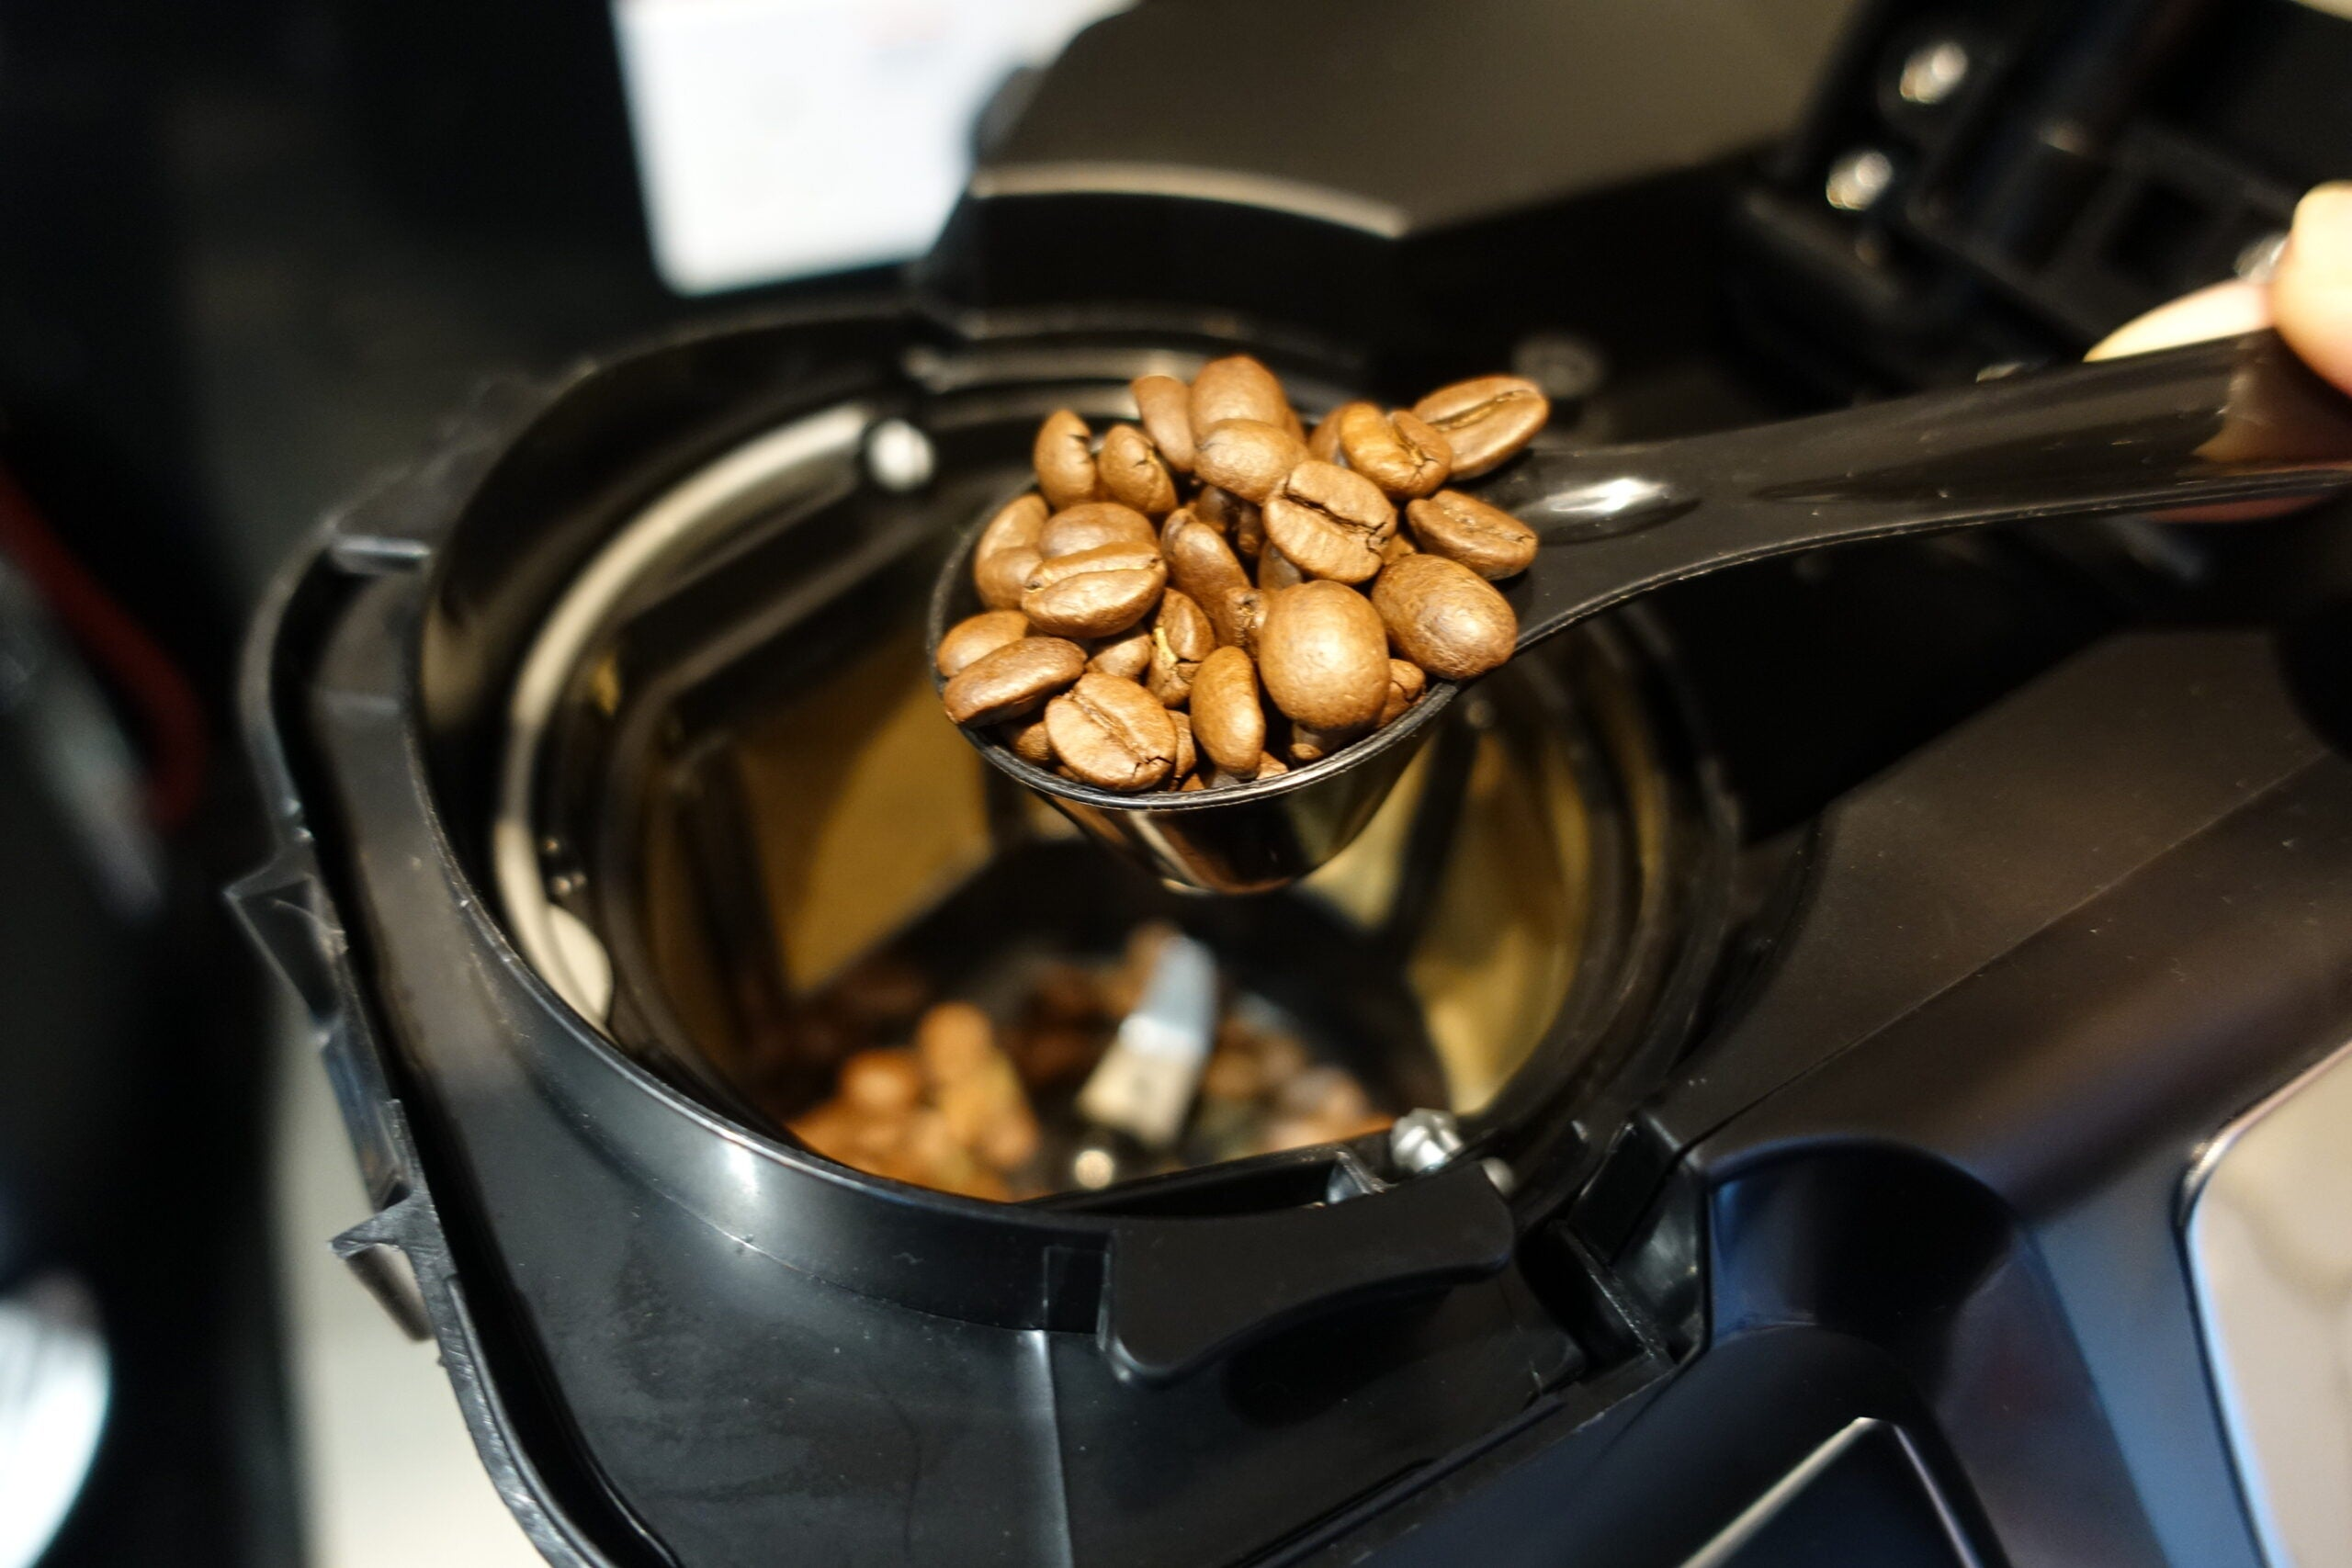 Russell Hobbs Grind and Brew beans